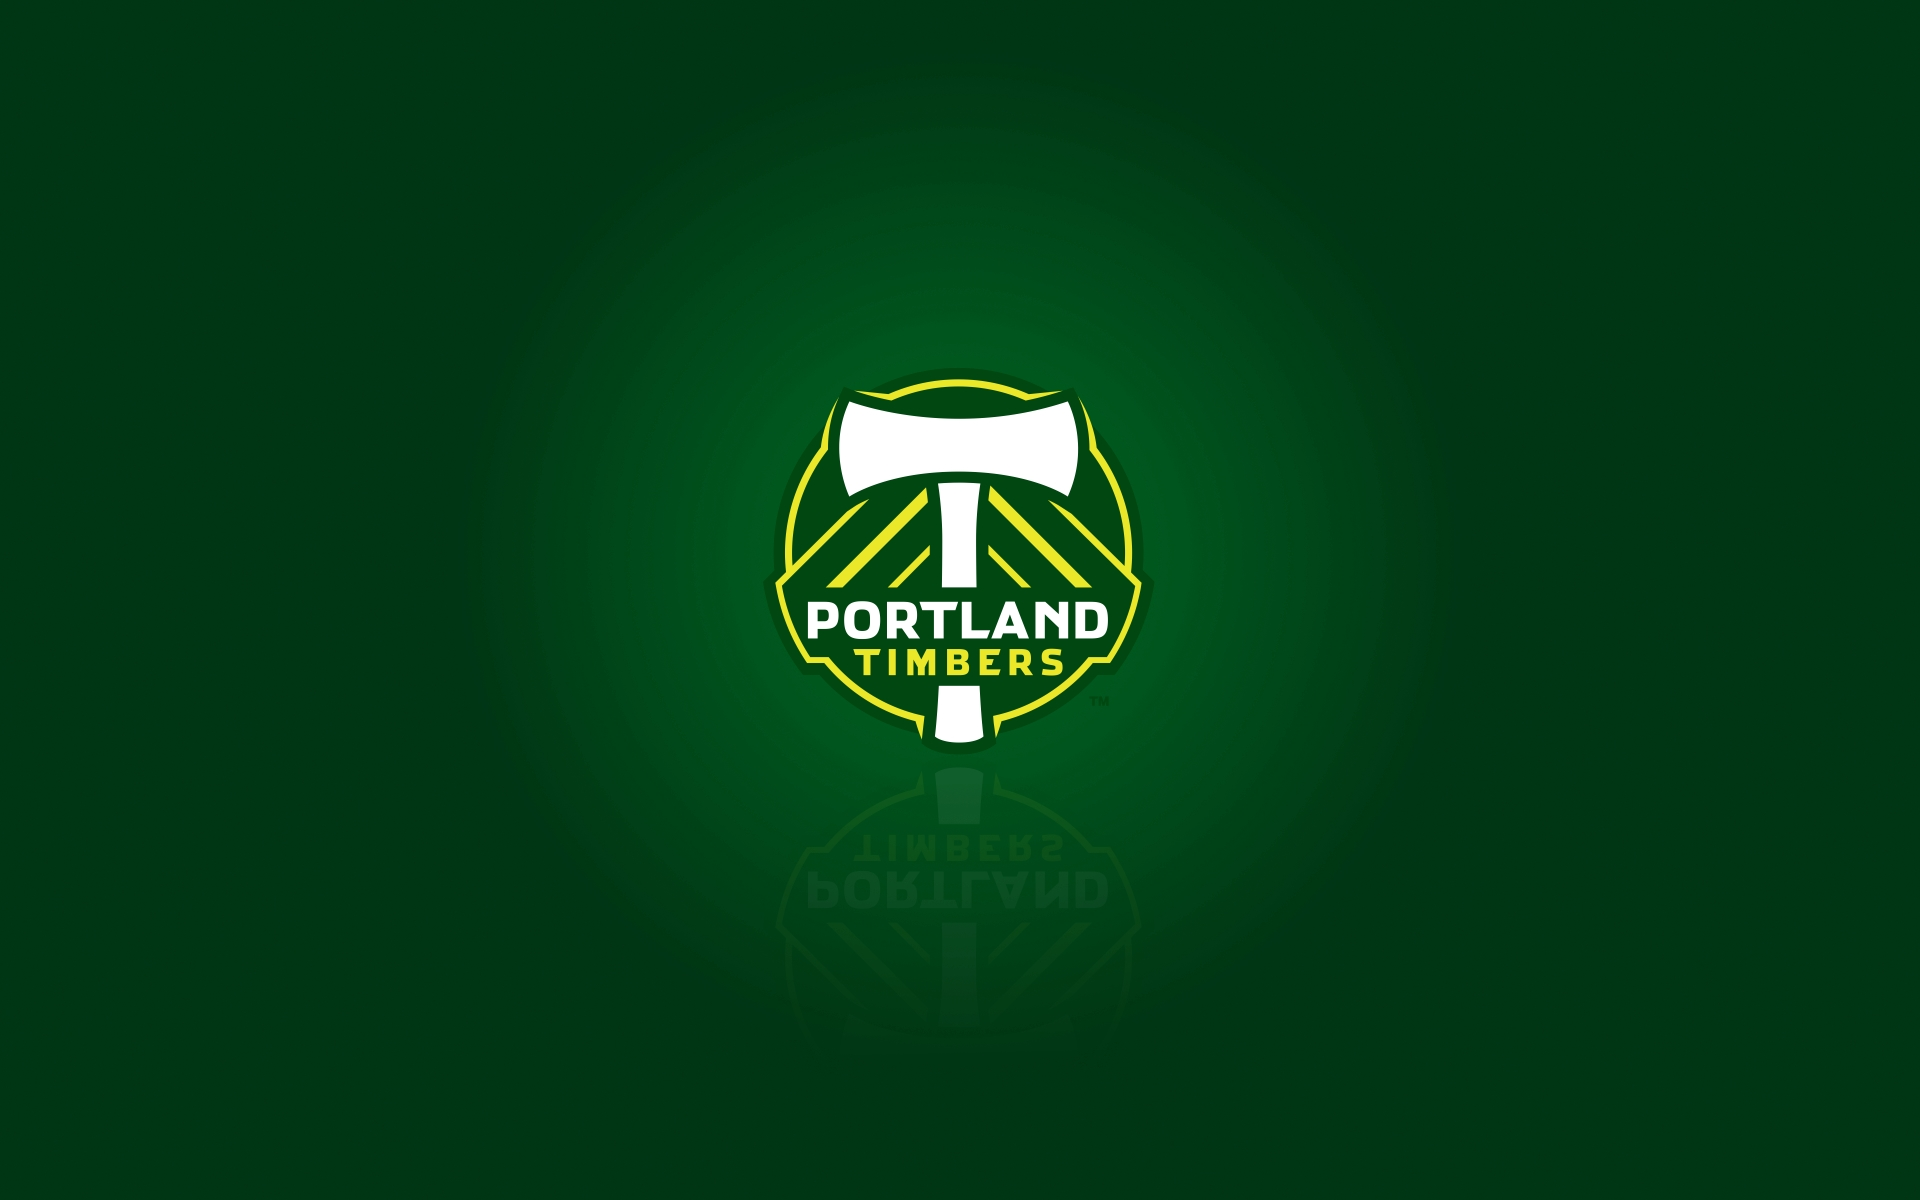 portland timbers logos download Dodger Stadium Logo download dodgers logo vector